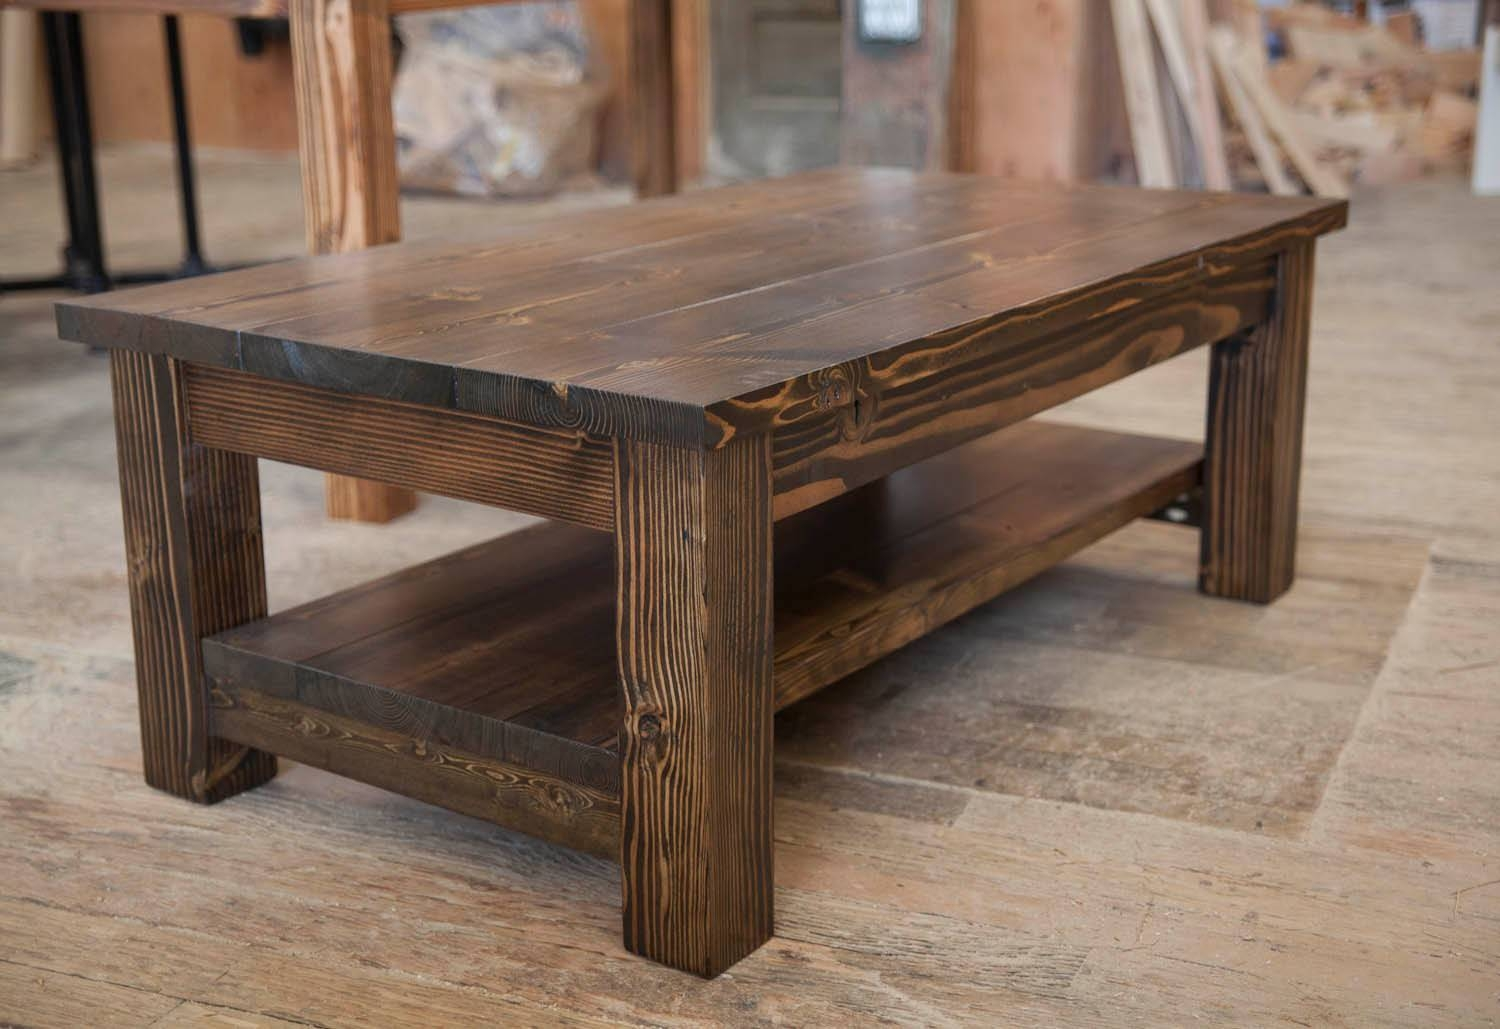 Furniture: Farmhouse Coffee Table | Wayfair Coffee Tables | Rustic with regard to Wayfair Coffee Table Sets (Image 23 of 30)